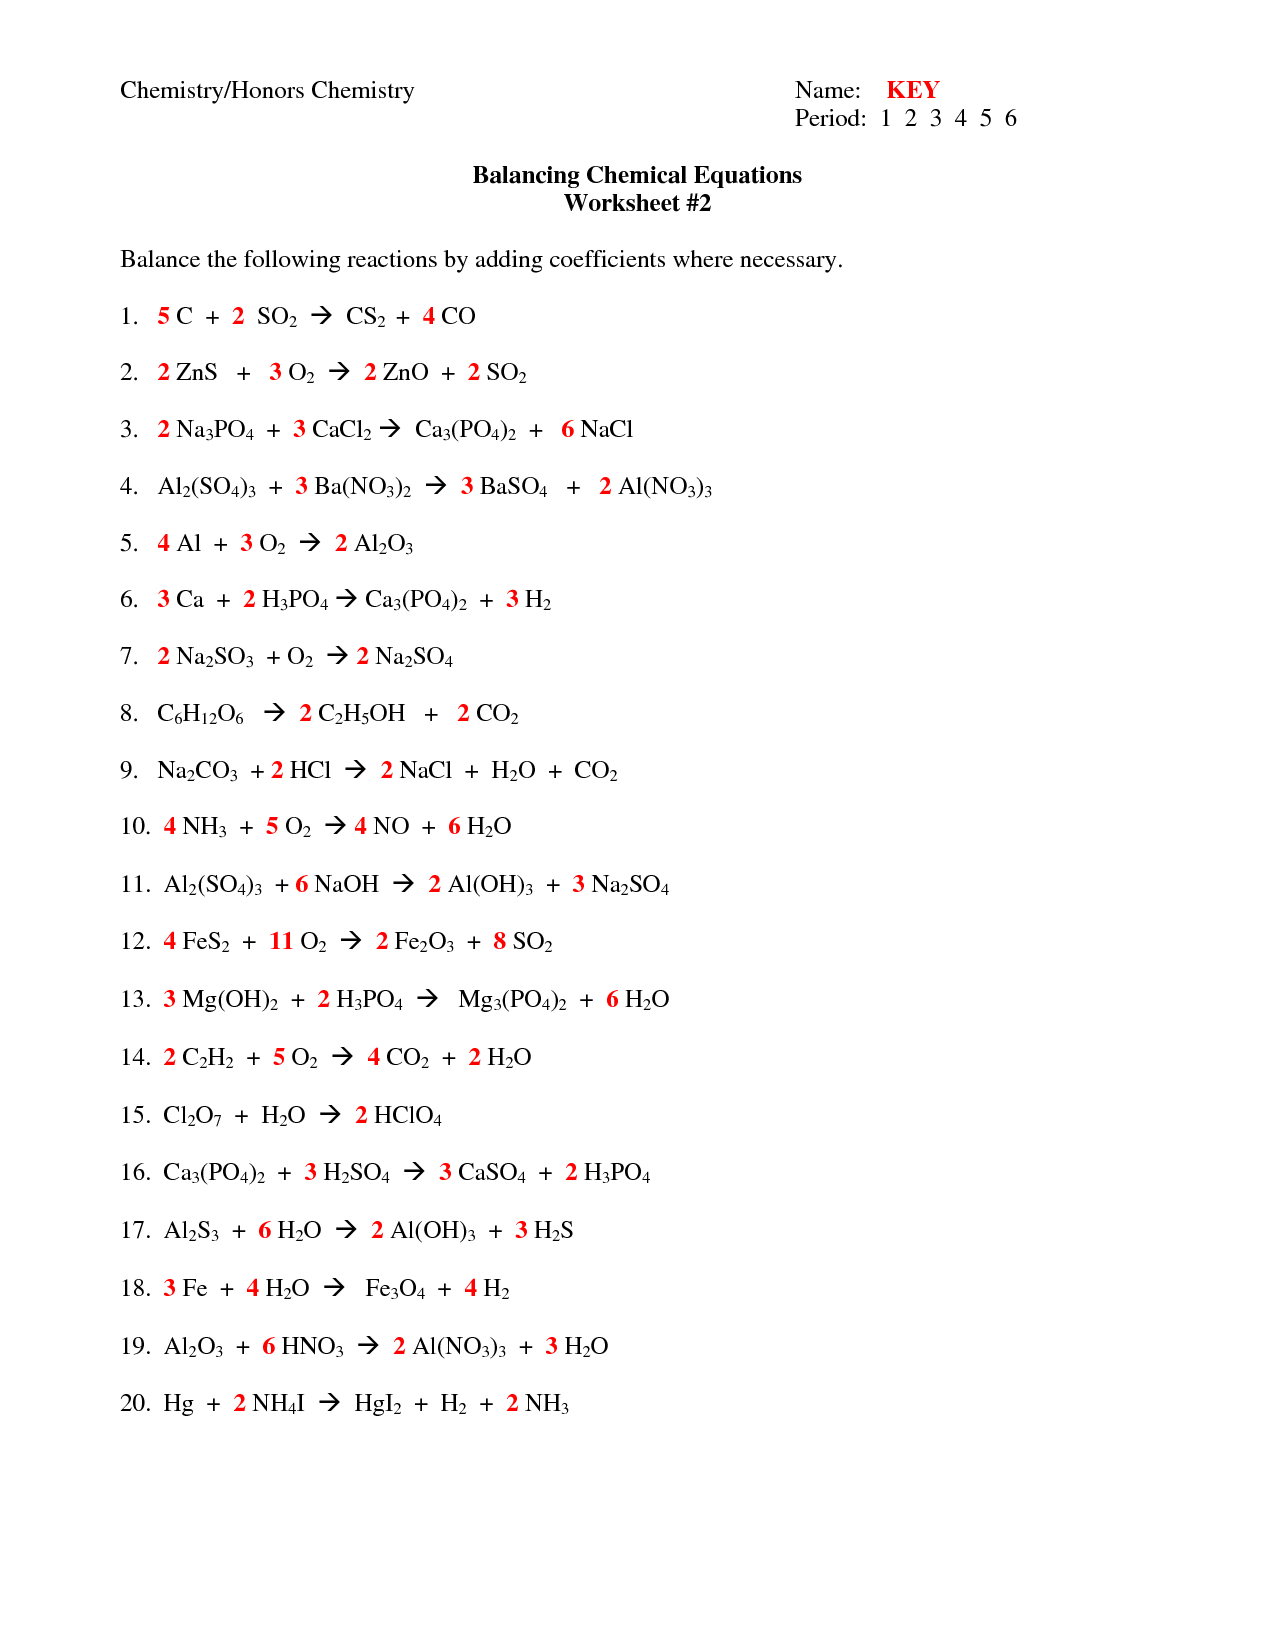 Balancing Chemical Equations Worksheet Answers Chemistry